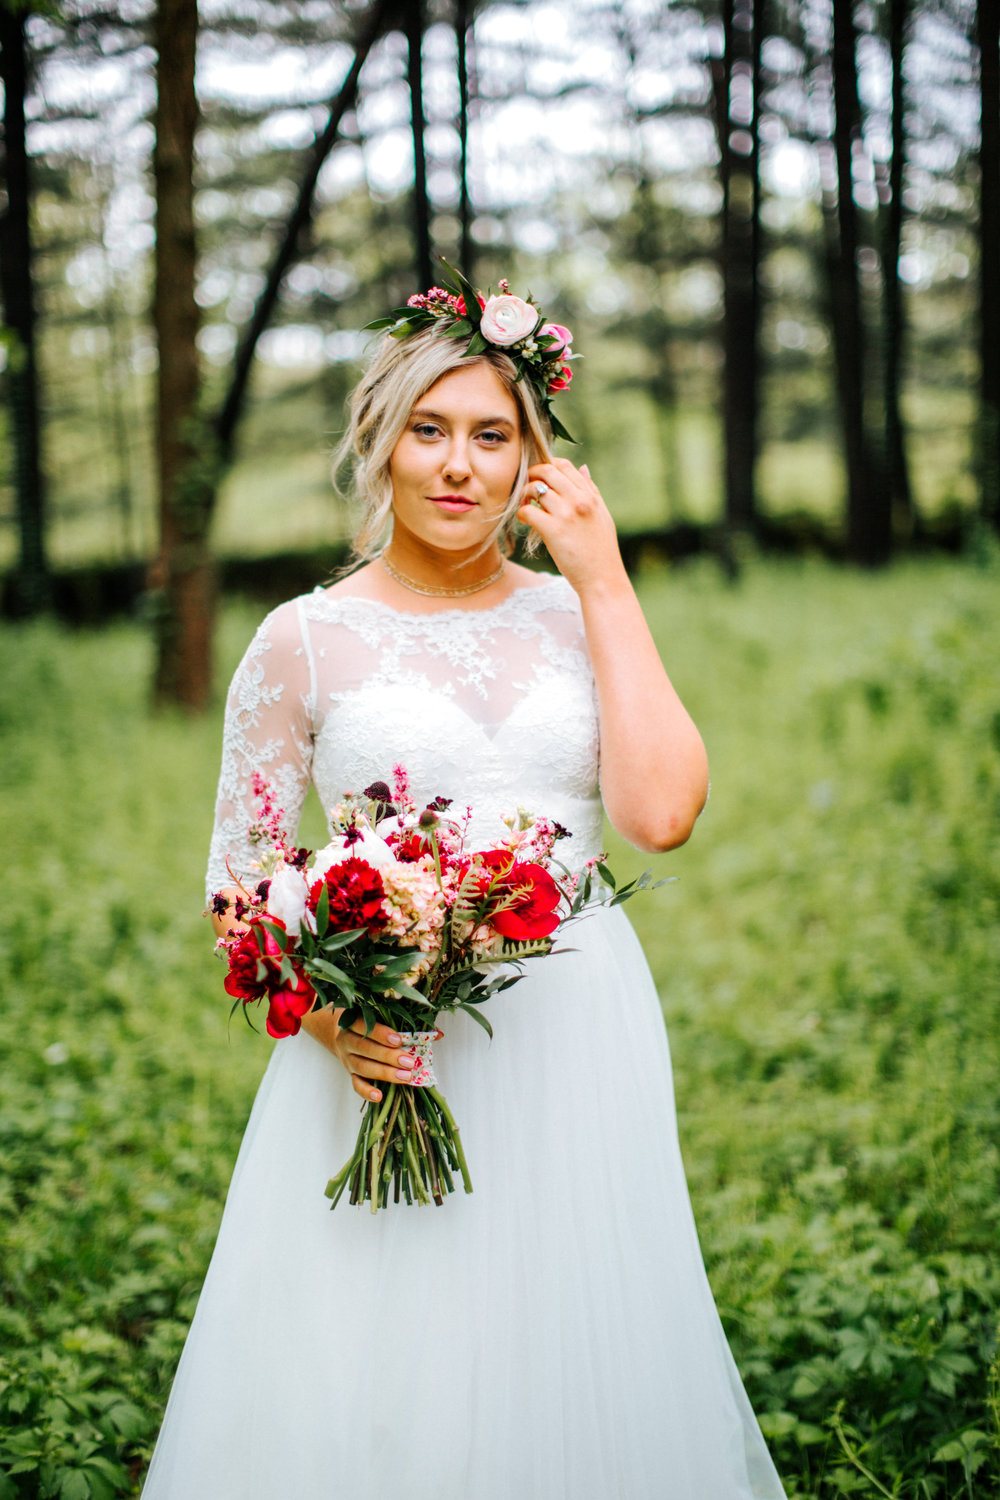 Bright Pink Bridal Bouquet and Flower Crown